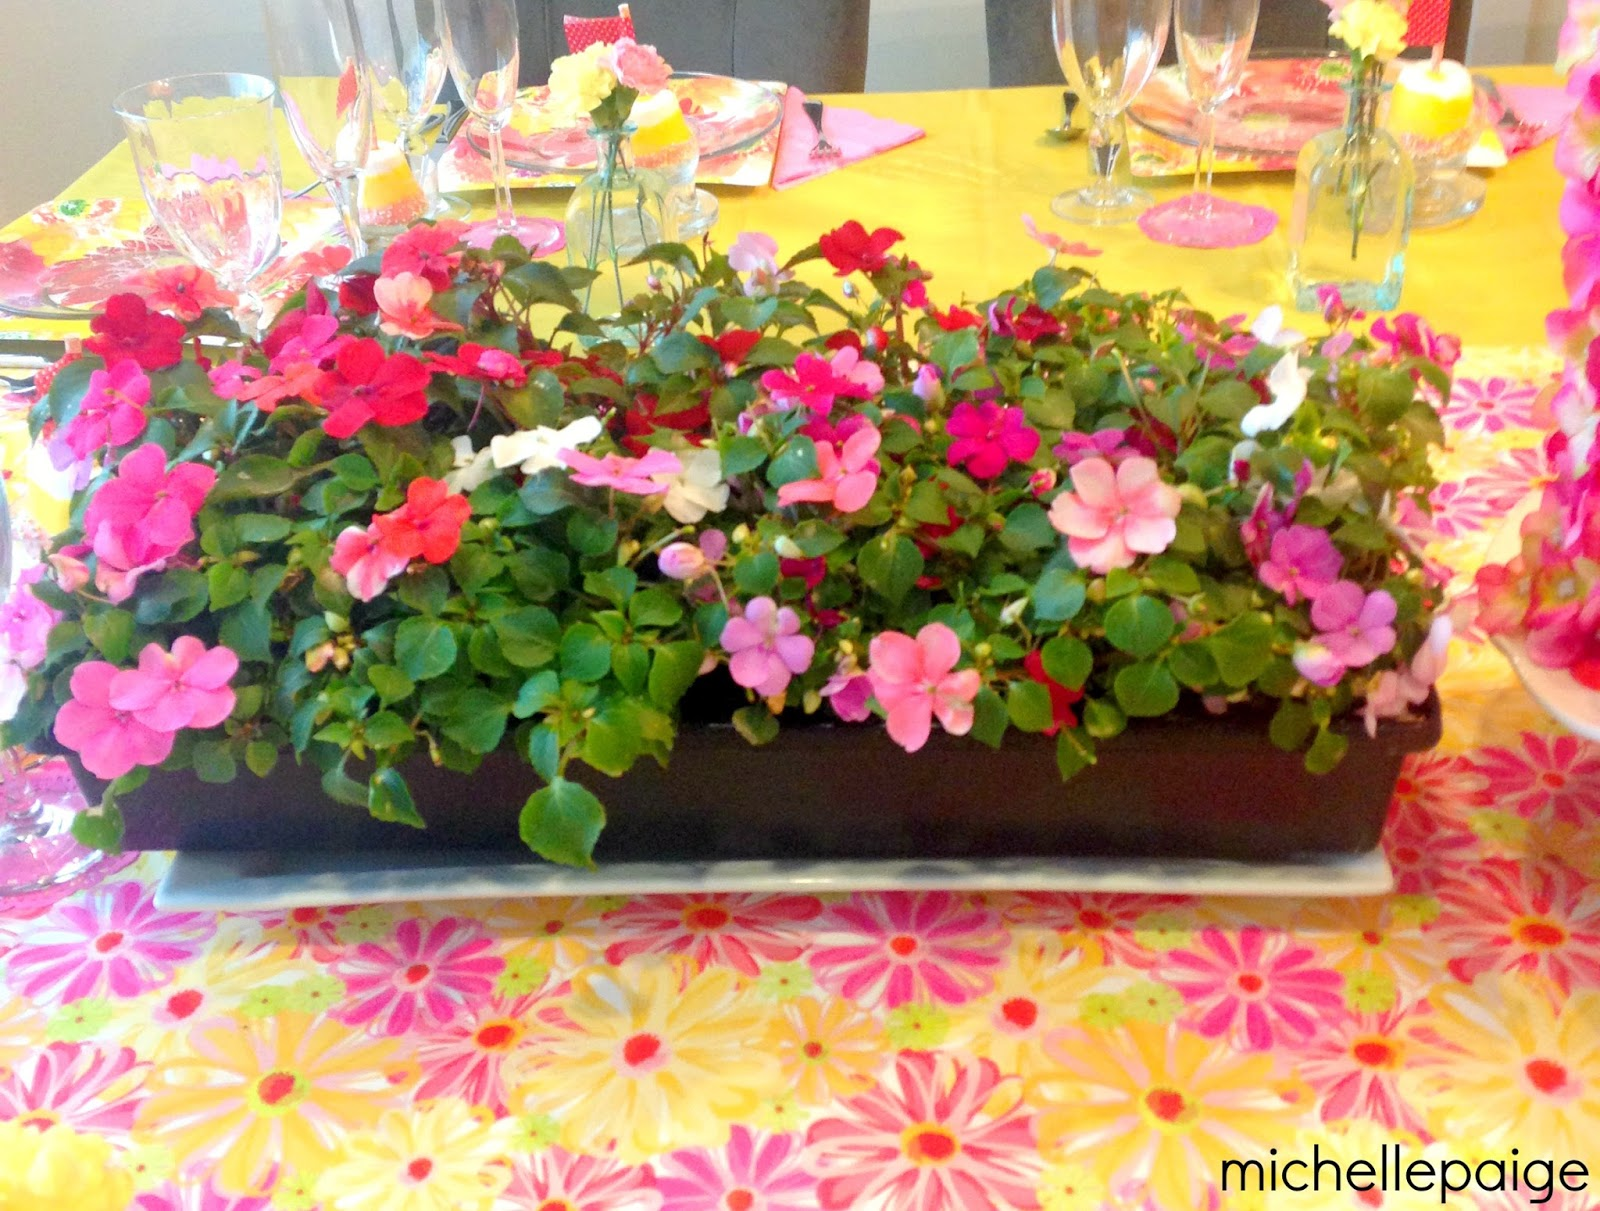 I like to use glass plates on top of patterned paper plates. After the meal is served the glass plates are collected. The paper plate is then ready for ... & michelle paige blogs: Floral Motheru0027s Day Party